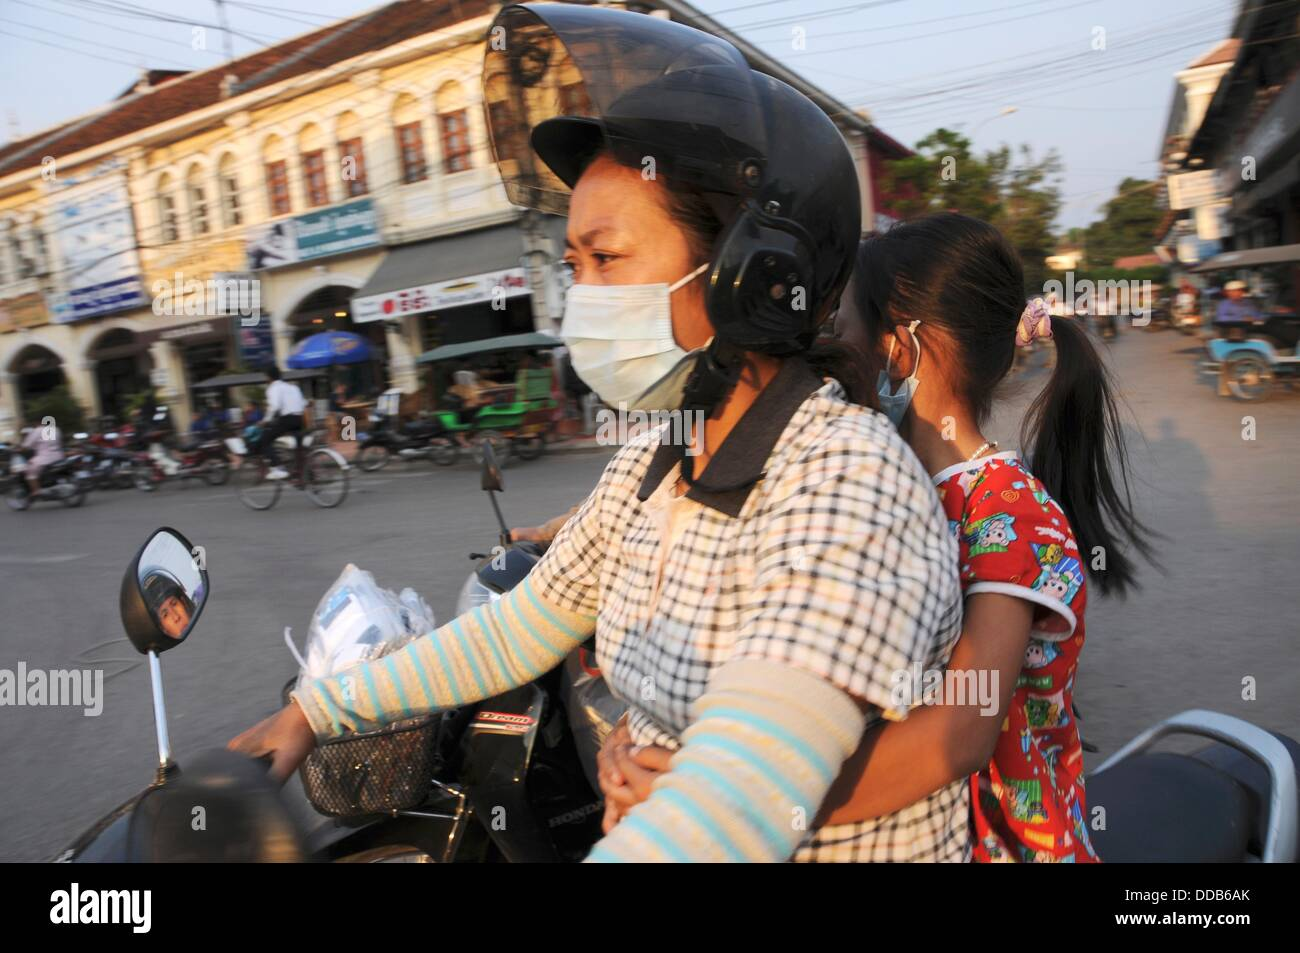 Cambodian Women driving with a helmet, respiratory protection and child on a scooter - Stock Image